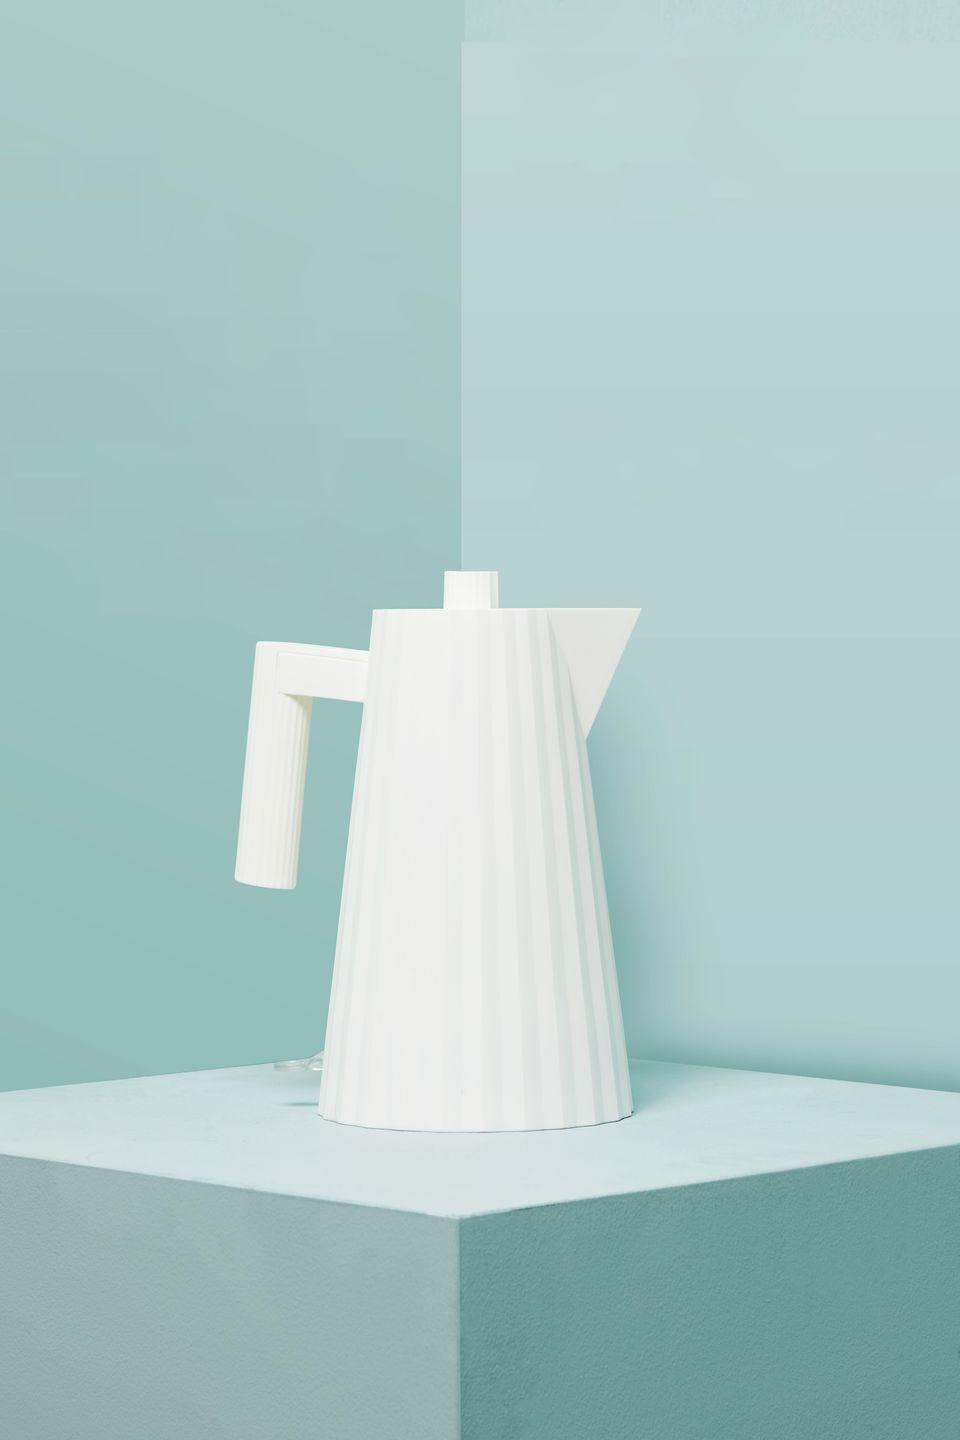 """<p>Lauded Italian architect and designer Michele De Lucchi was inspired by the pleated fabric of fifties and sixties fashion when creating his 'Plissé' kitchen range, and the effect feels almost architectural. We like the white, but it also comes in grey, black and a particularly punchy red. £85.10, <a href=""""https://www.finnishdesignshop.com/kitchenware-small-appliances-kettles-plisse-electric-kettle-white-p-26039.html"""" rel=""""nofollow noopener"""" target=""""_blank"""" data-ylk=""""slk:finnishdesignshop.com"""" class=""""link rapid-noclick-resp"""">finnishdesignshop.com</a></p>"""